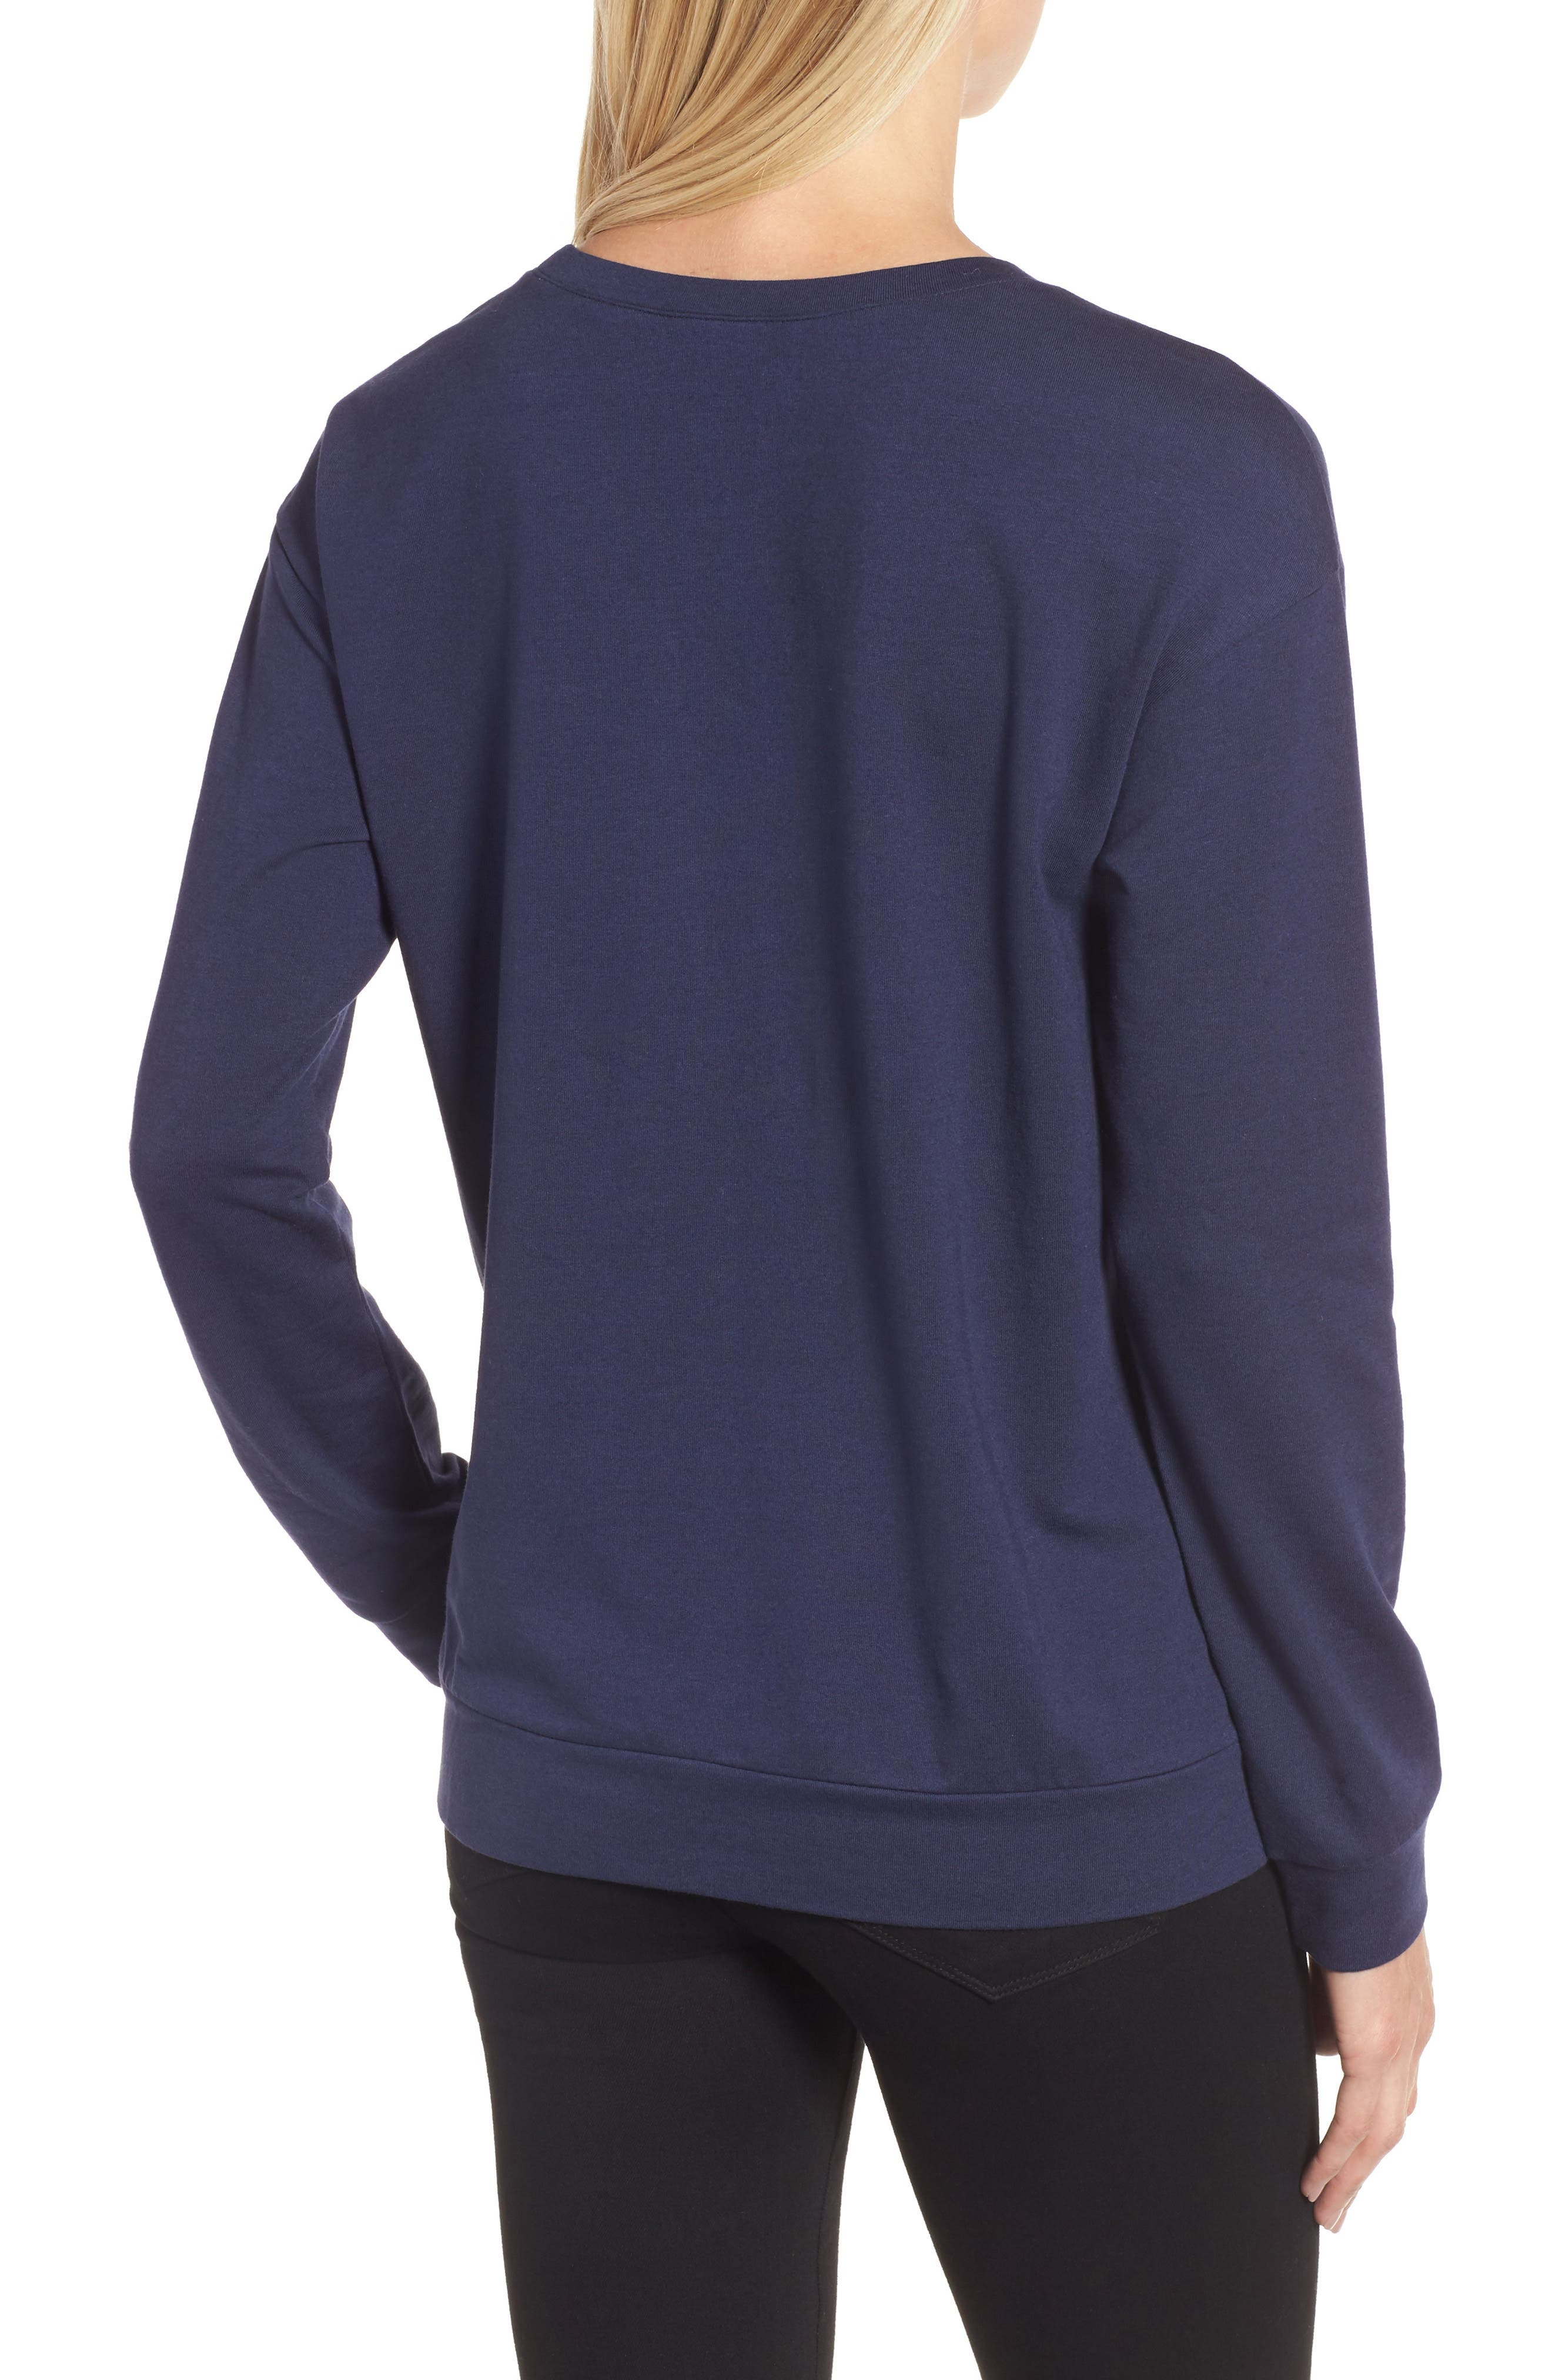 Bow Detail Sweatshirt,                             Alternate thumbnail 3, color,                             Navy Peacoat